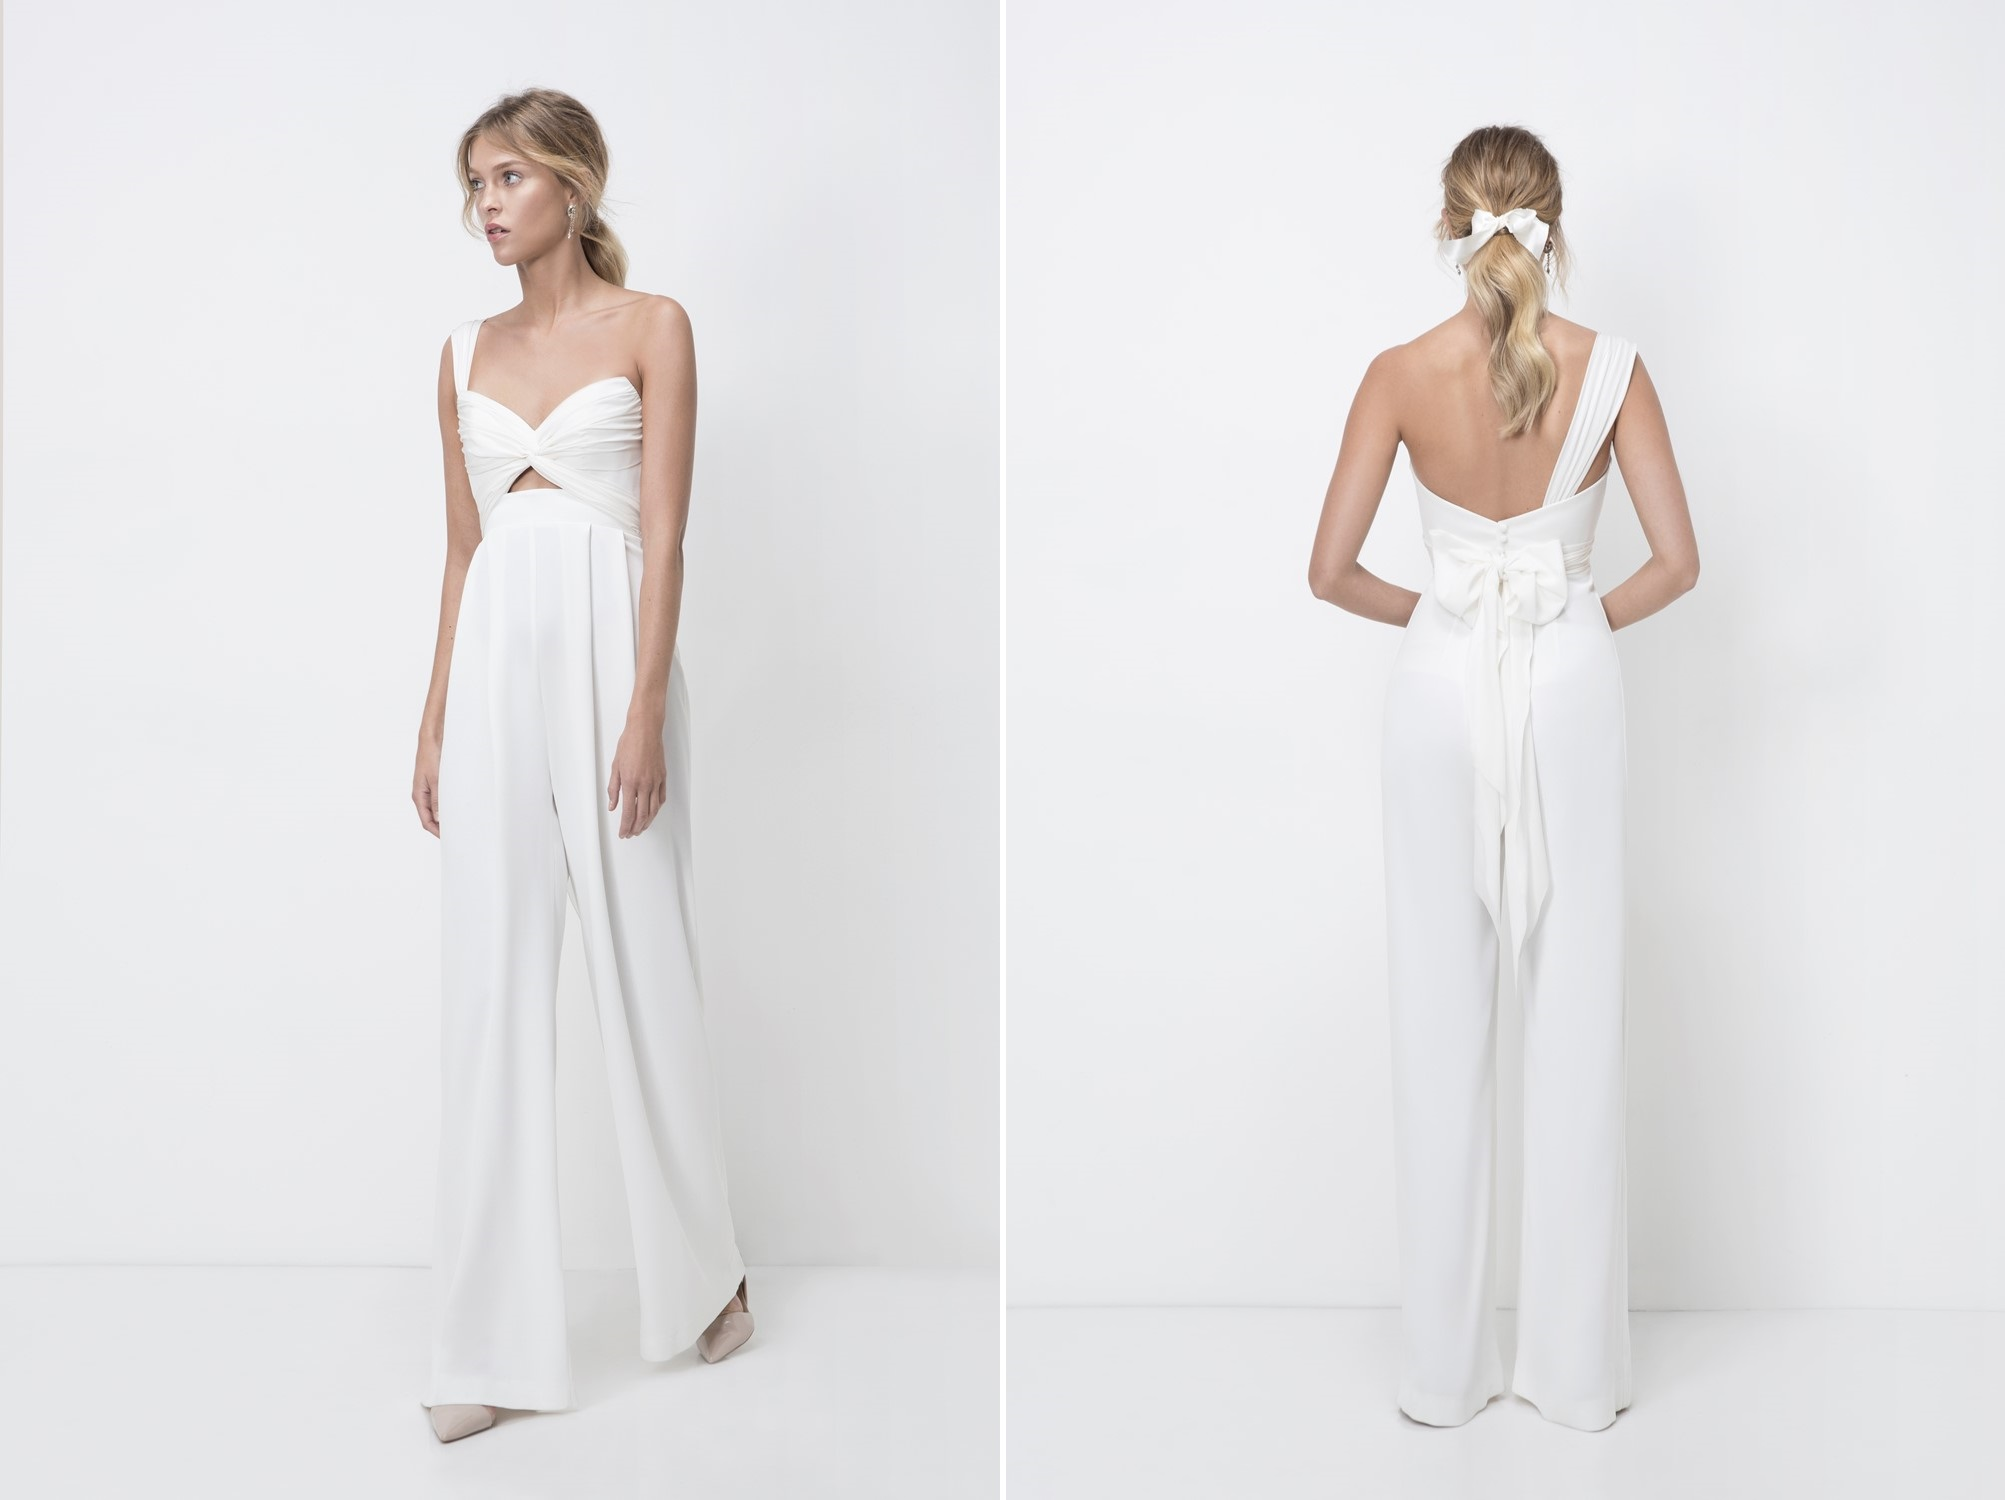 Eve Bridal Trousers from Lihi Hod's 2018 Bridal Collection